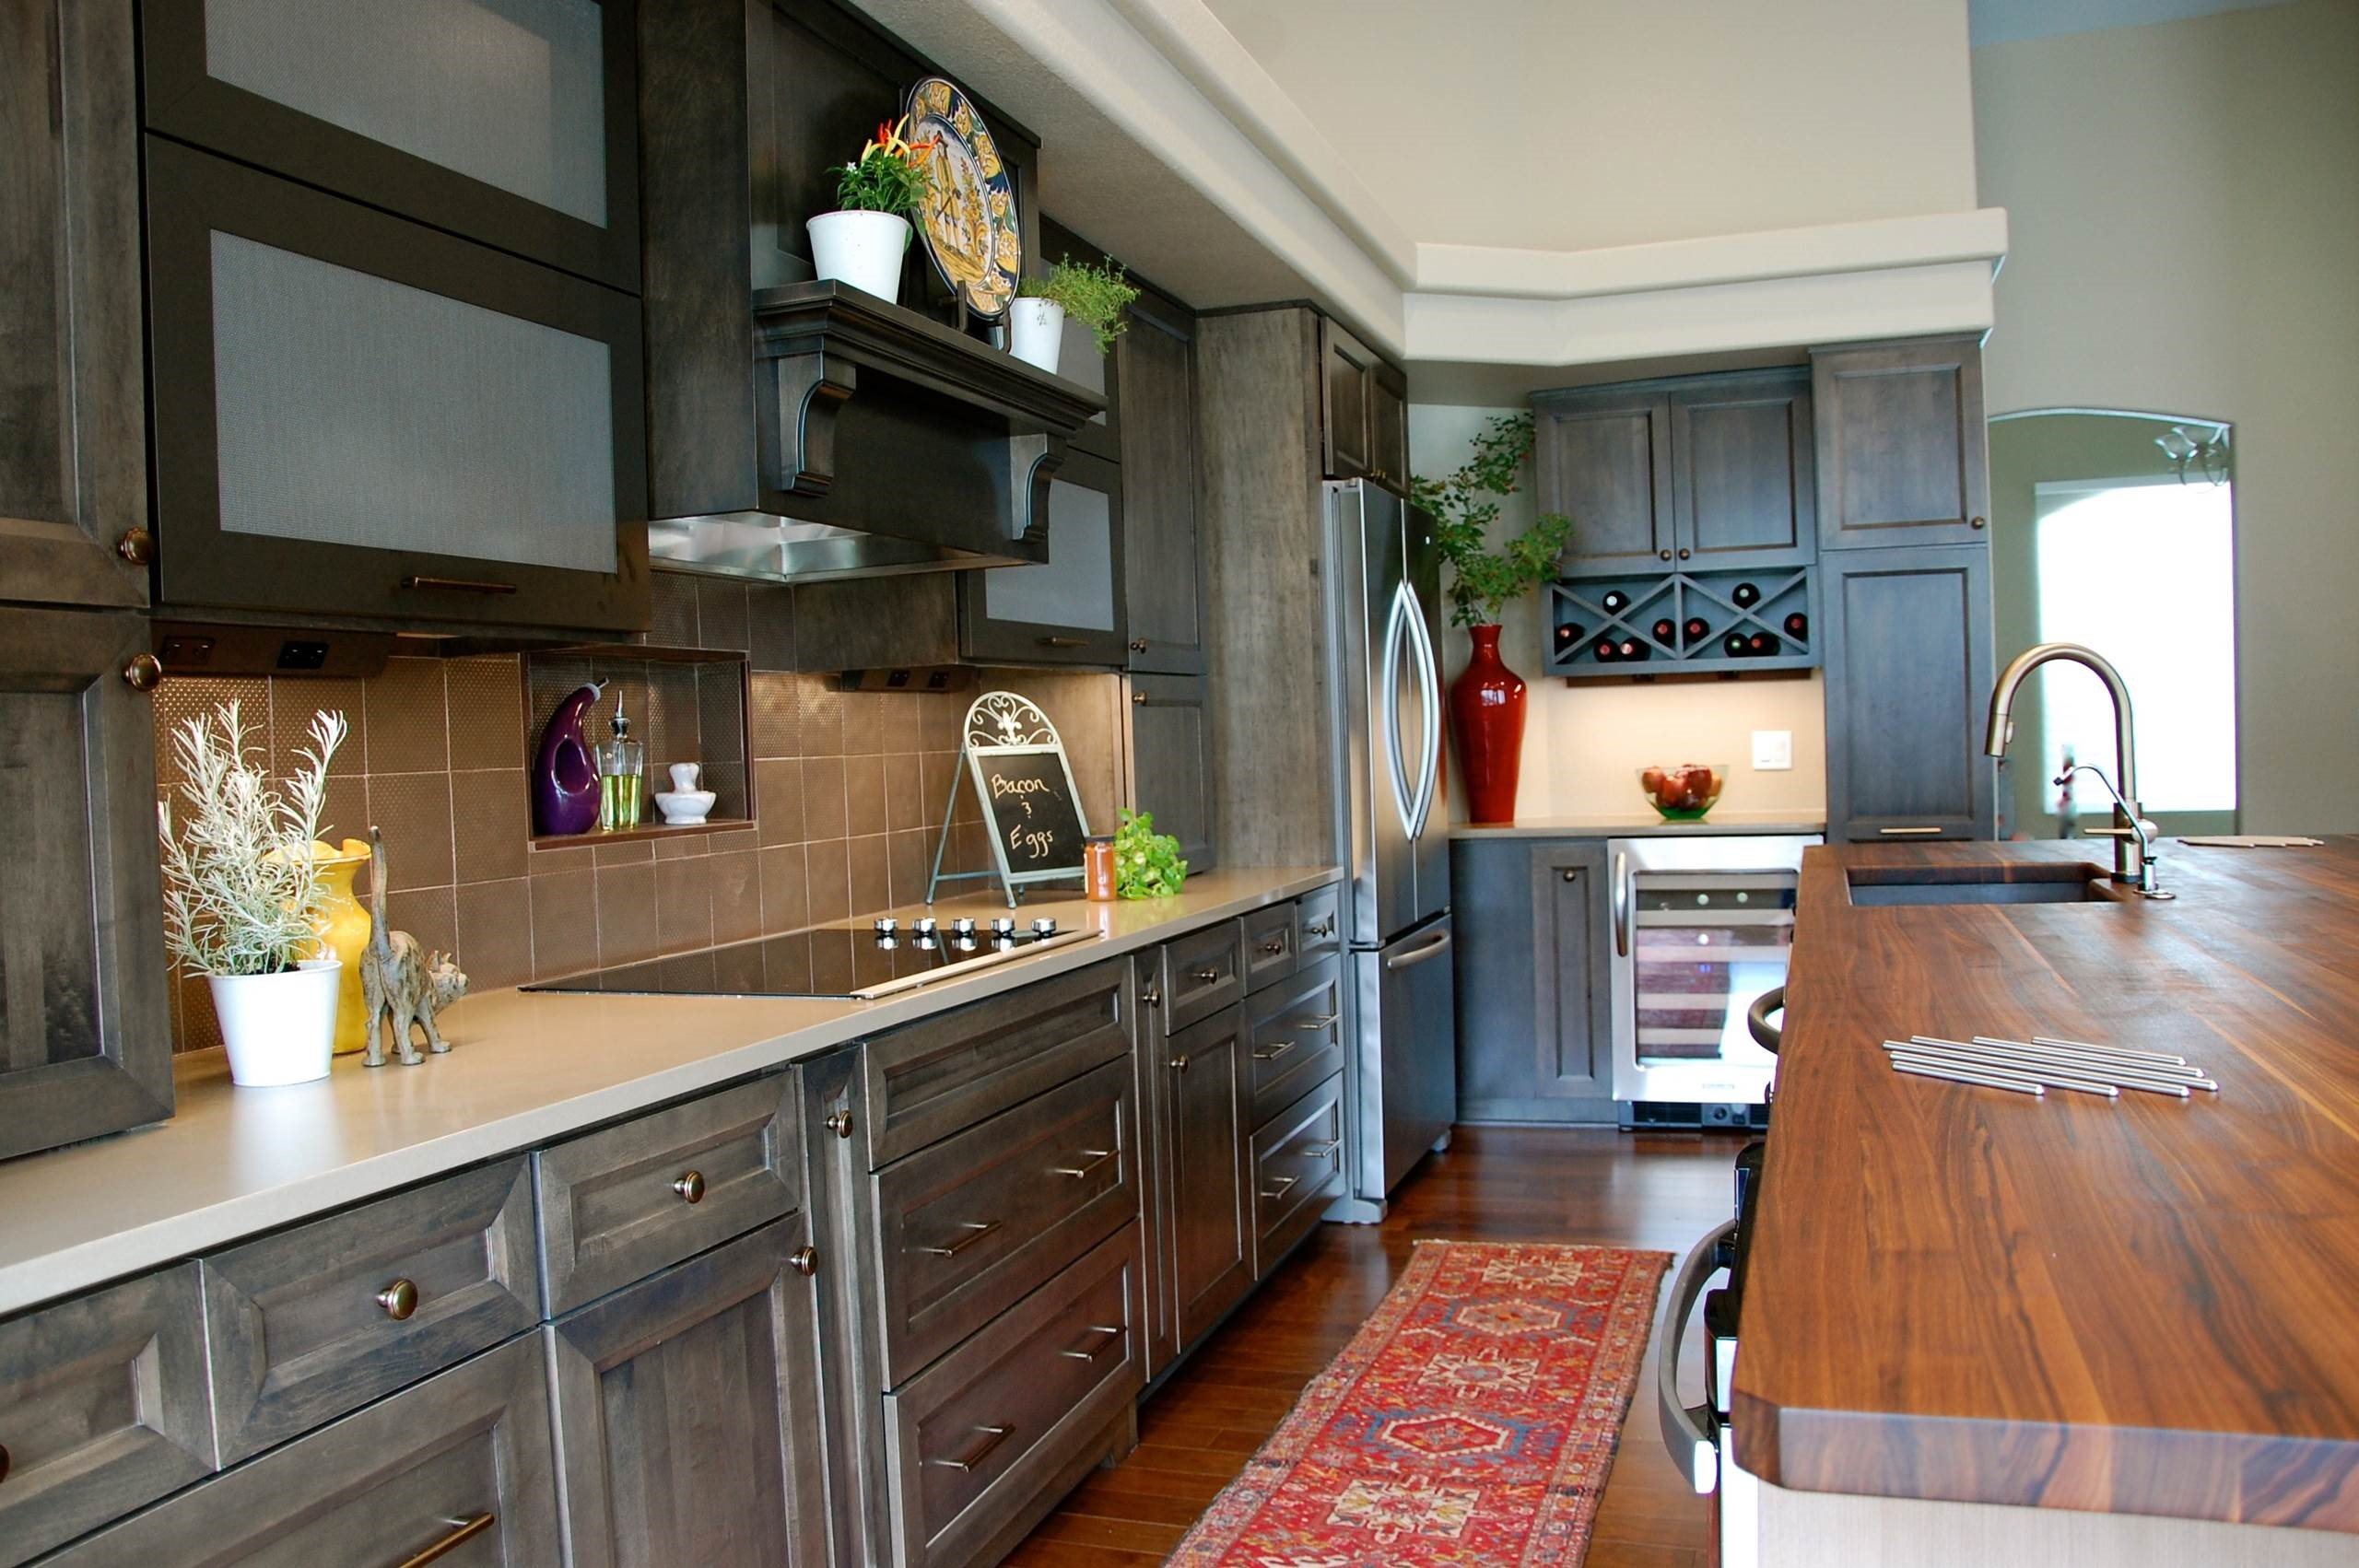 Walnut Kitchen Island Countertop by Deborah Dyste